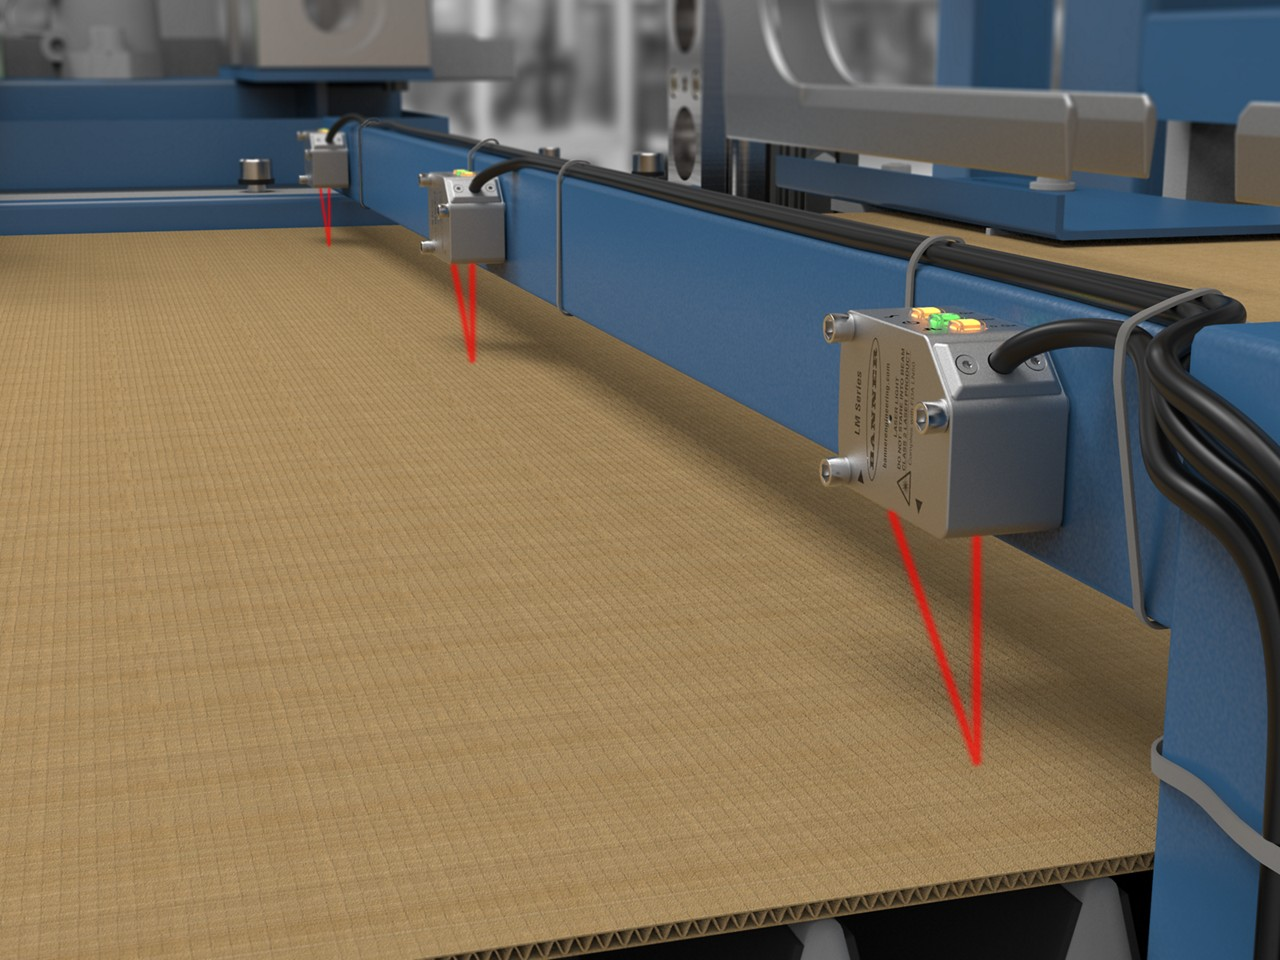 LM precision measurement sensor monitors cardboard thickness